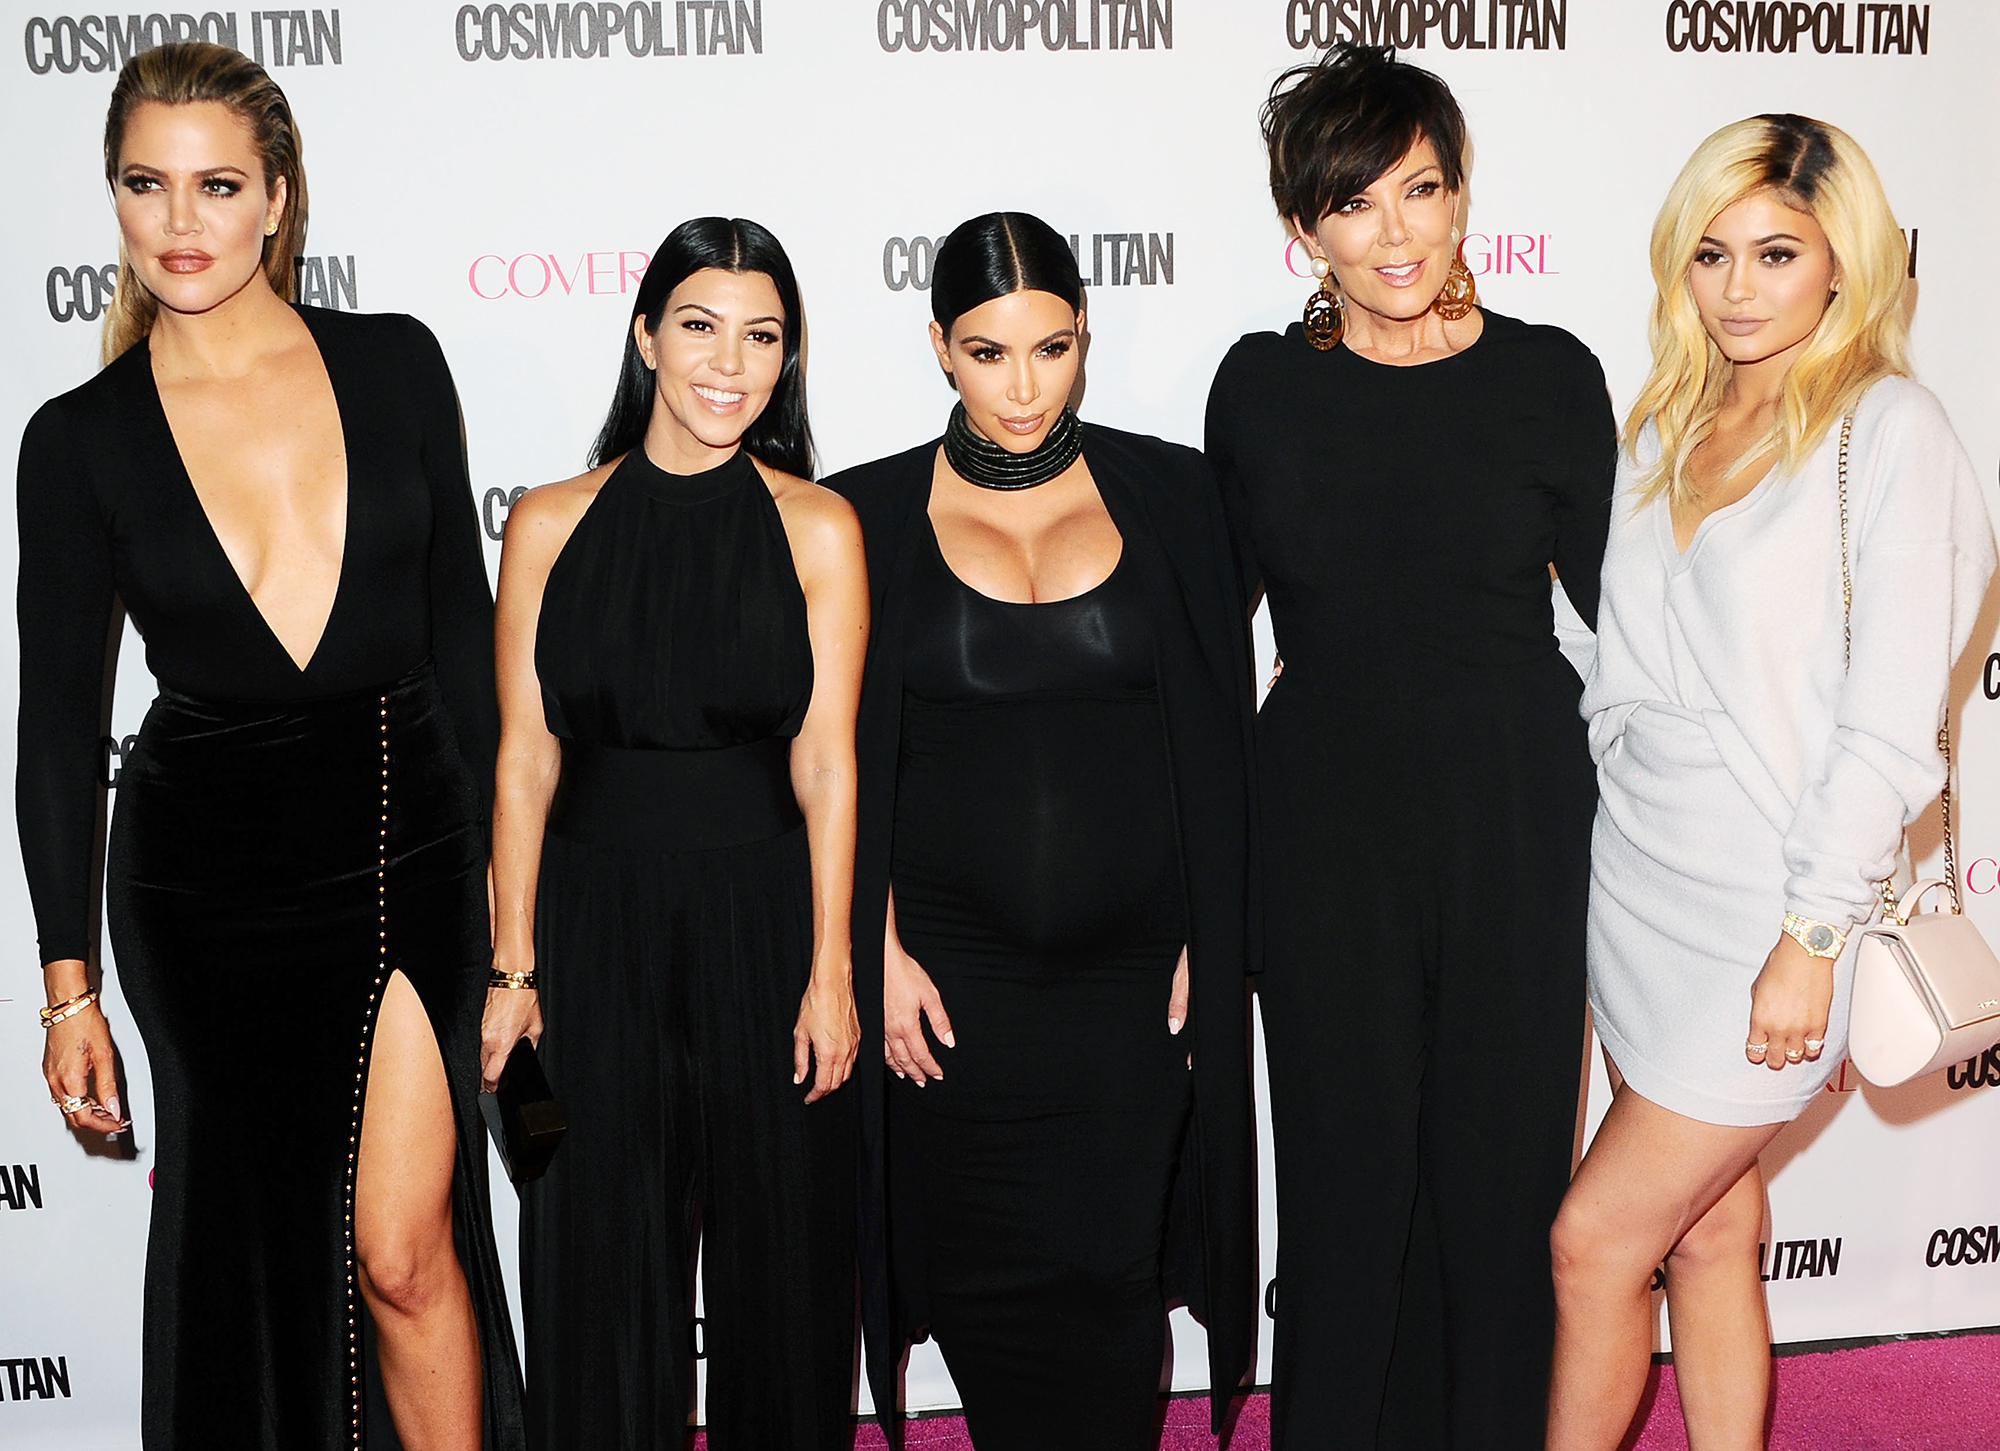 Who is Khloe's favorite sister?